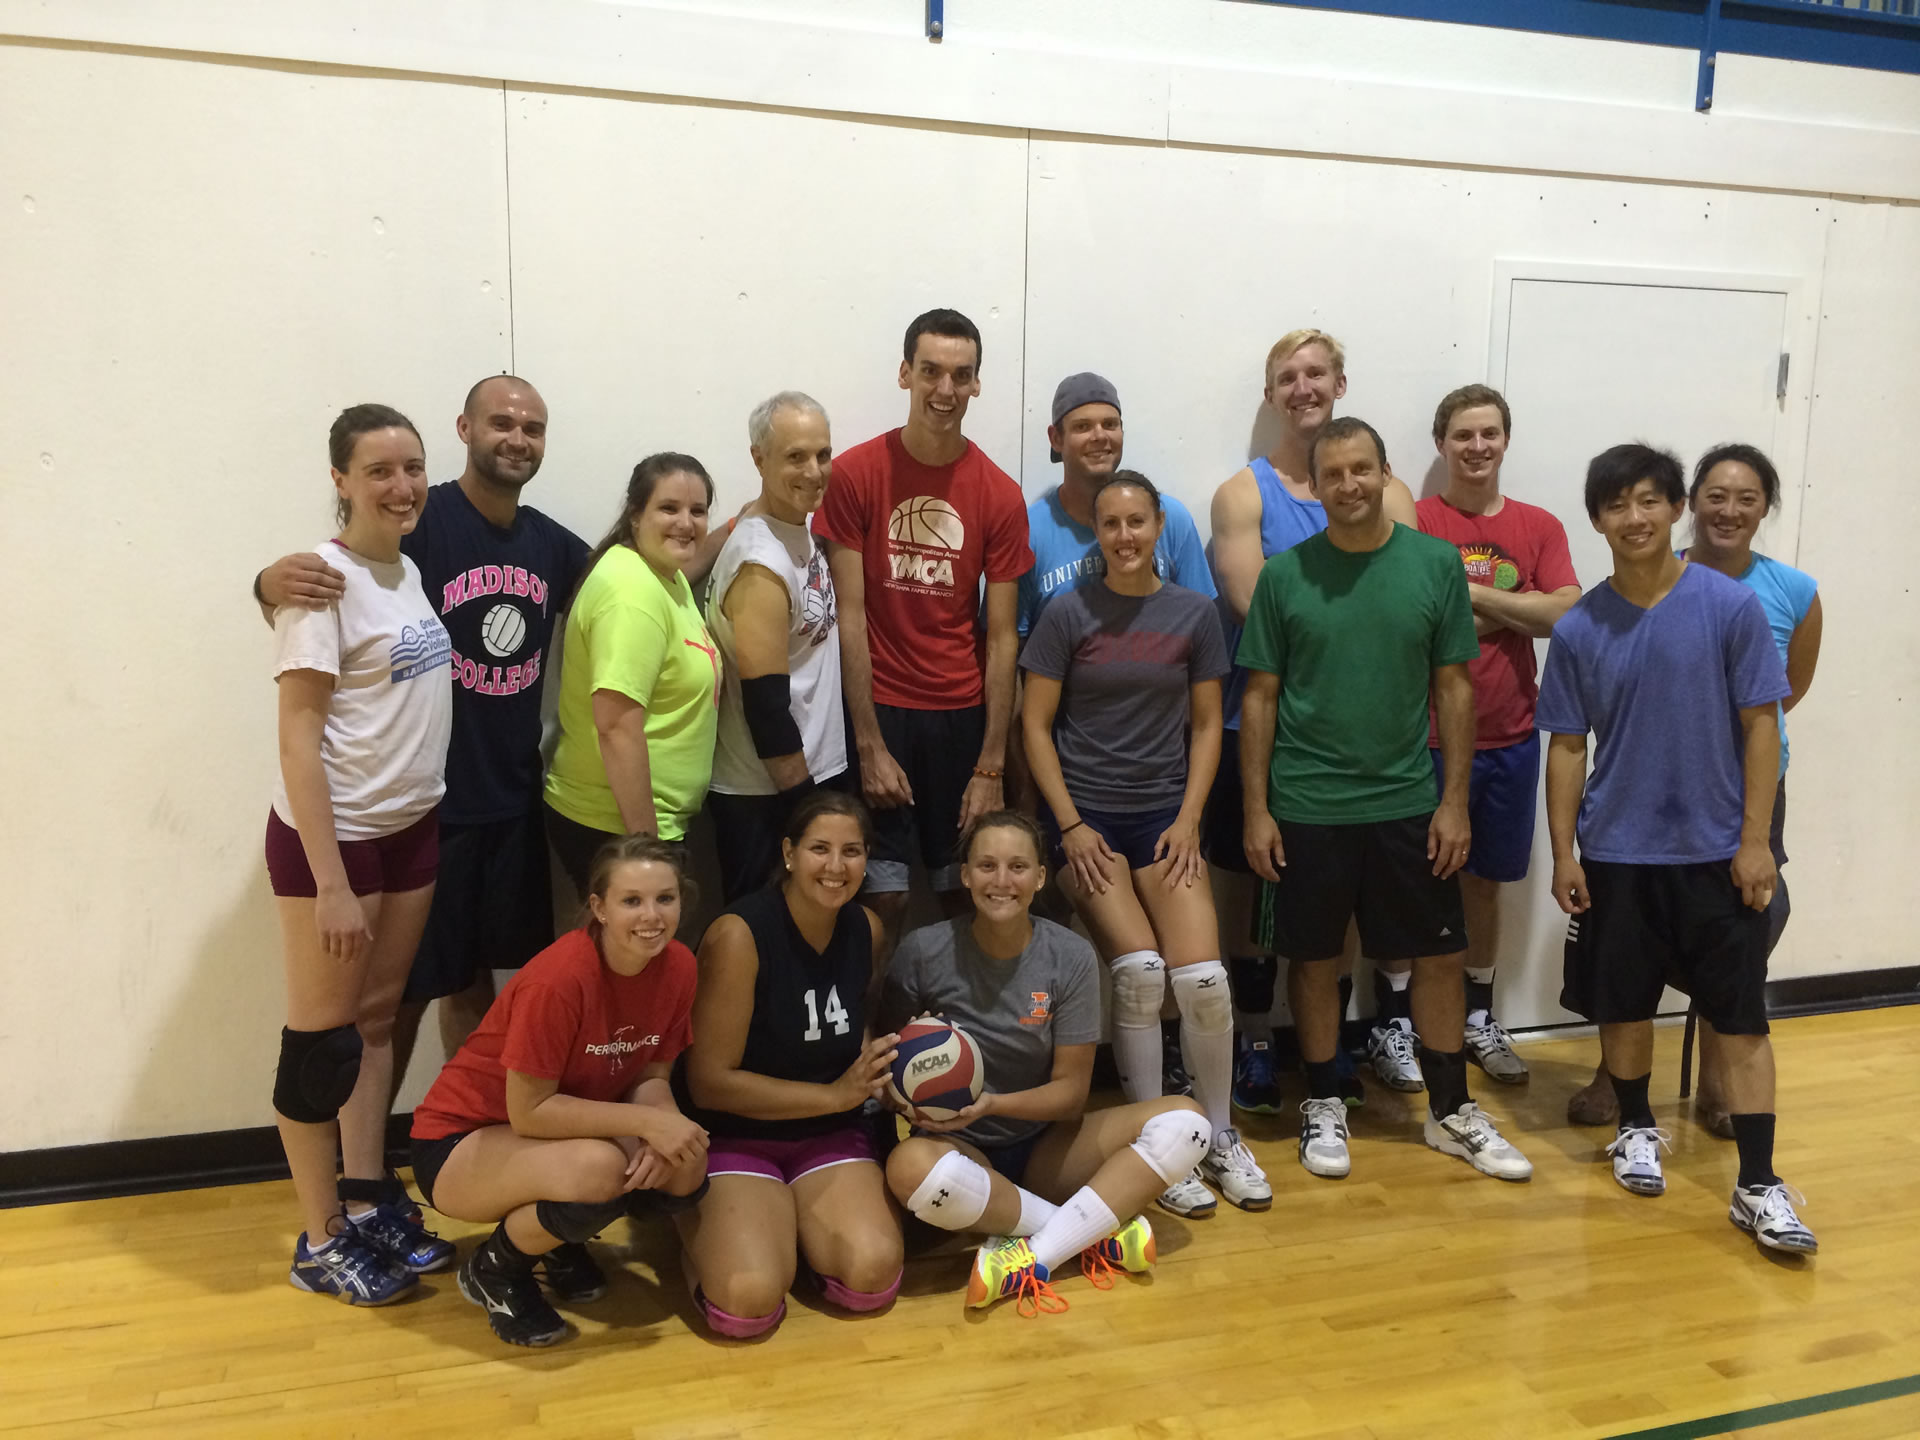 madison-turners-volleyball-group-photo-7